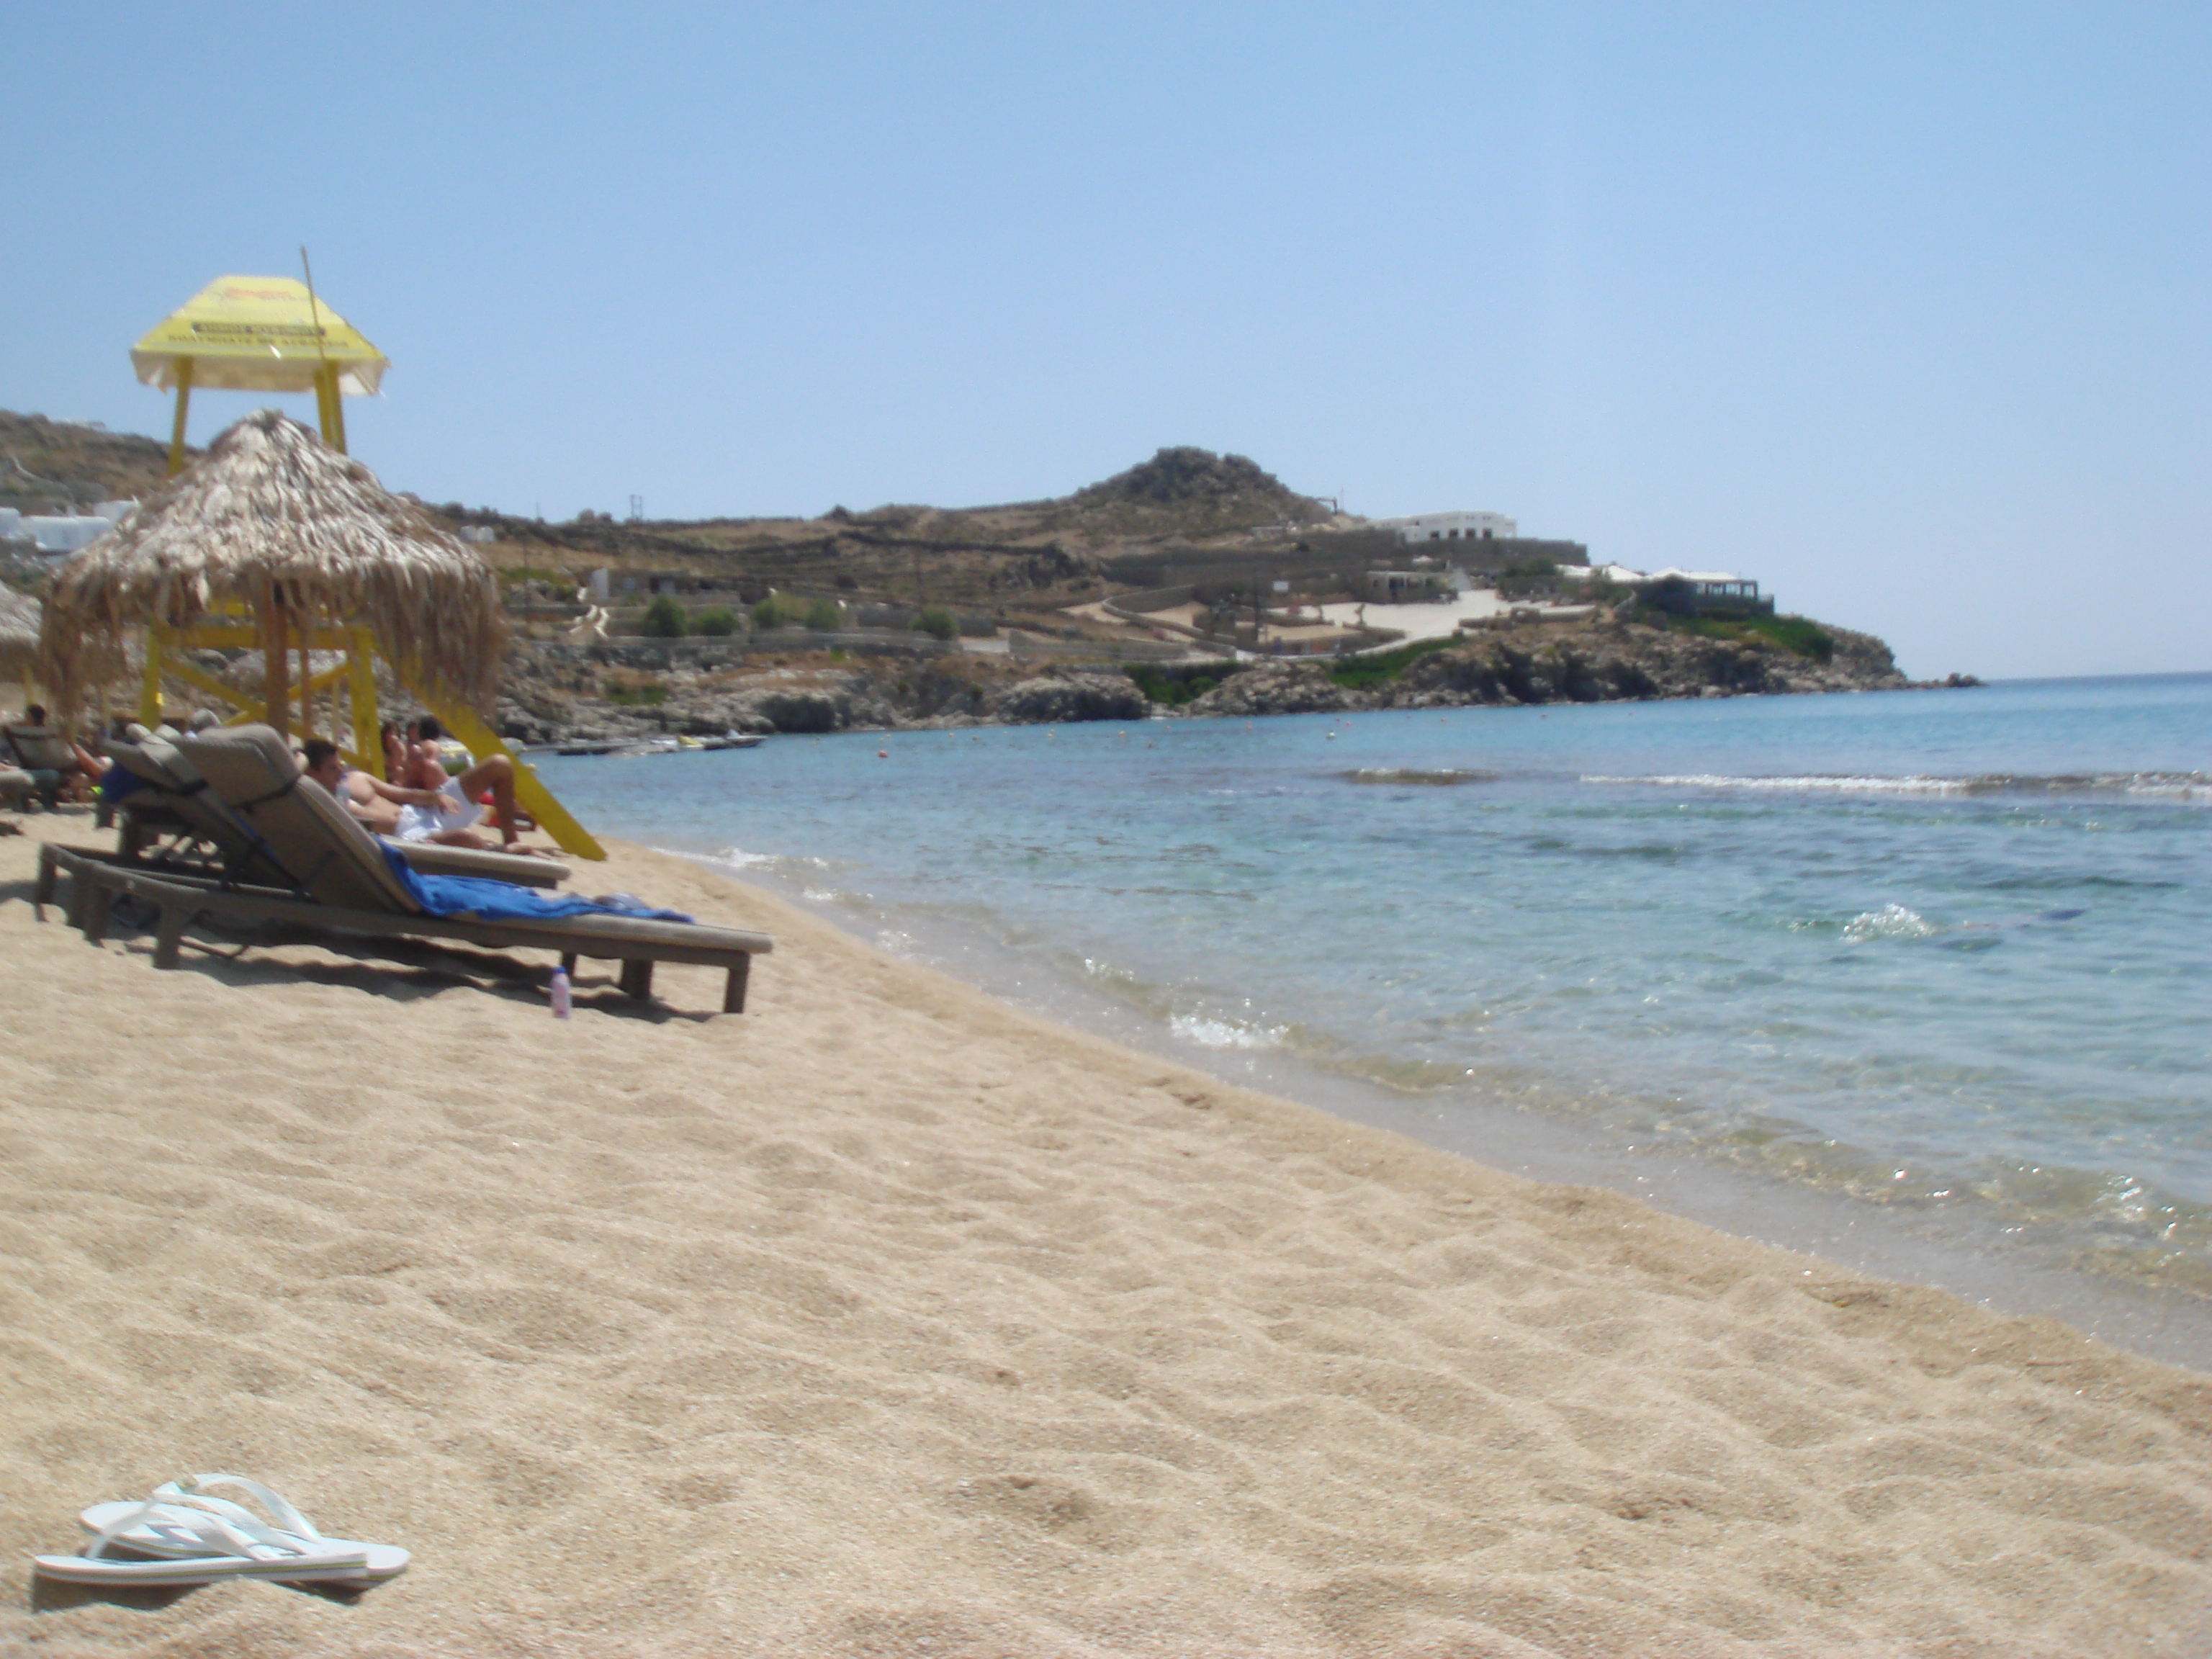 Best Island Beaches For Partying Mykonos St Barts: One Day In Mykonos: What To Do When Short On Time